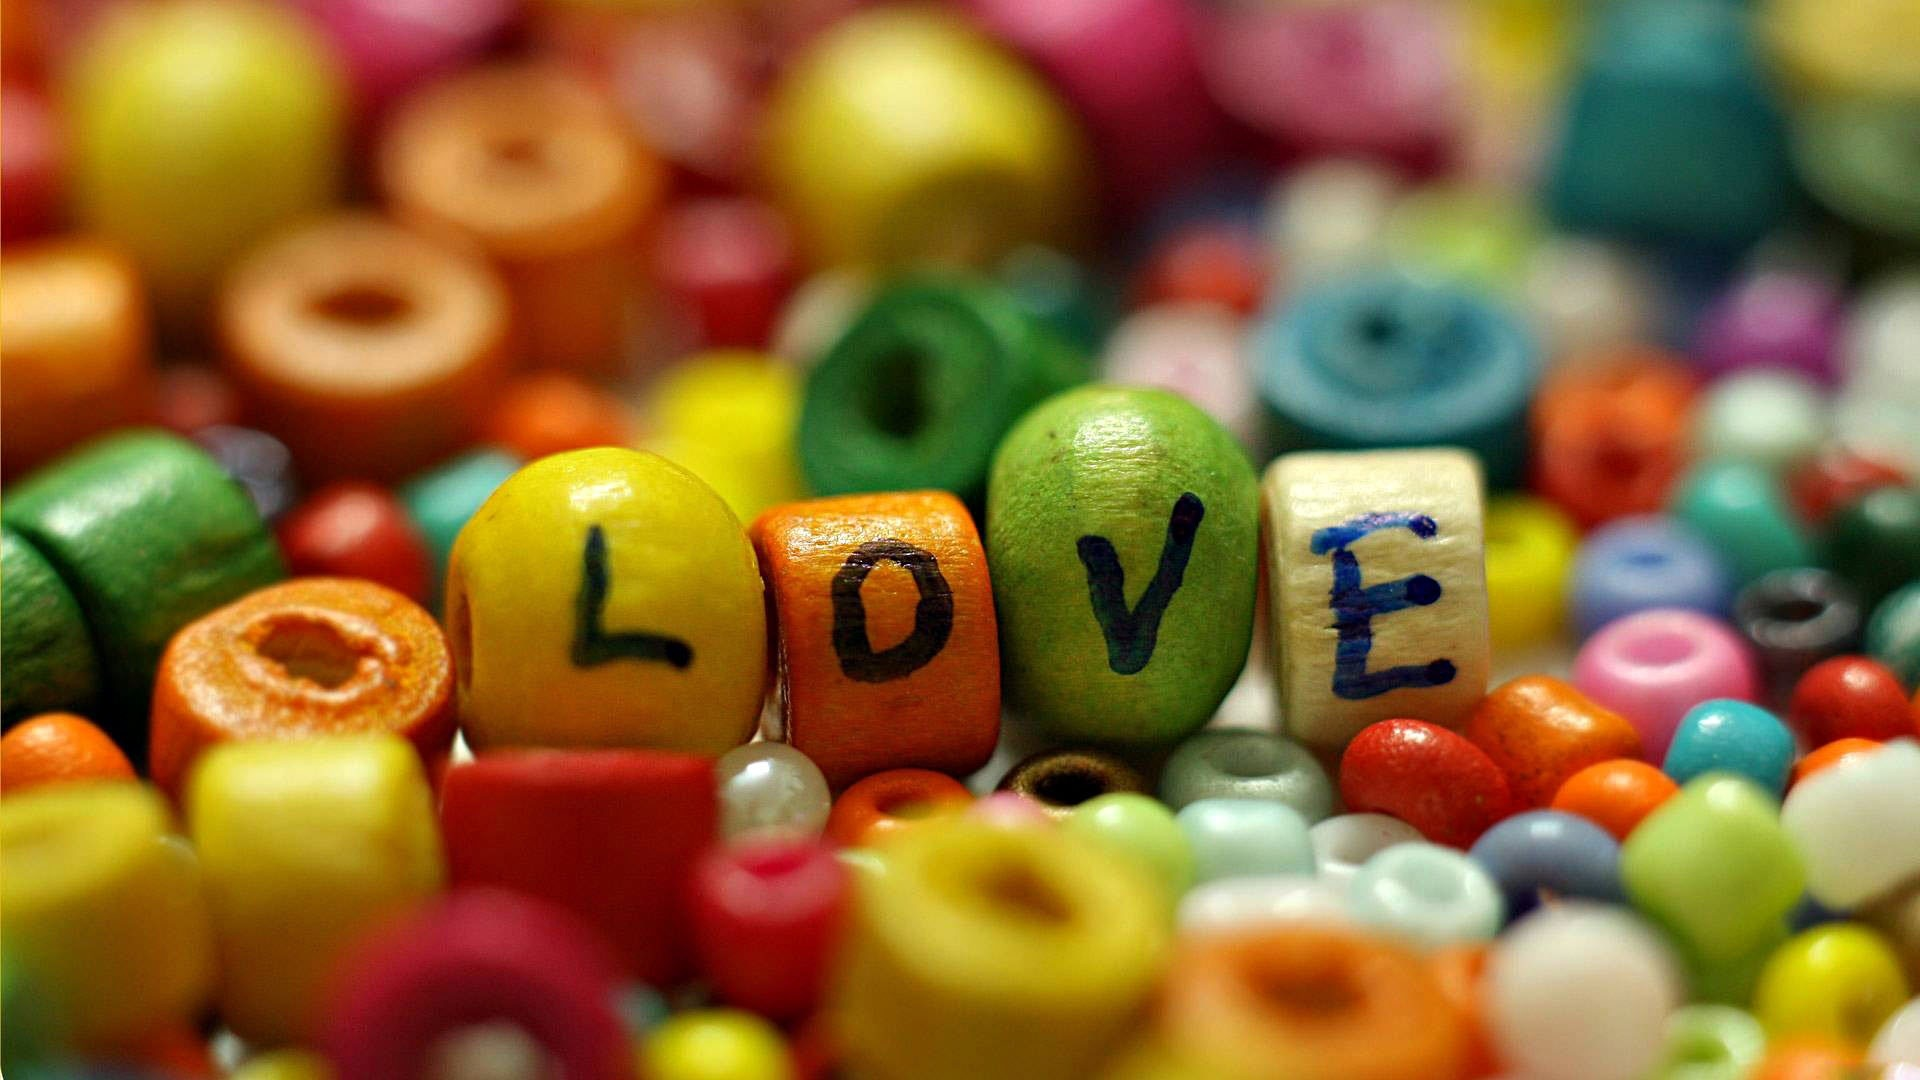 Cute love heart images wallpaper free download